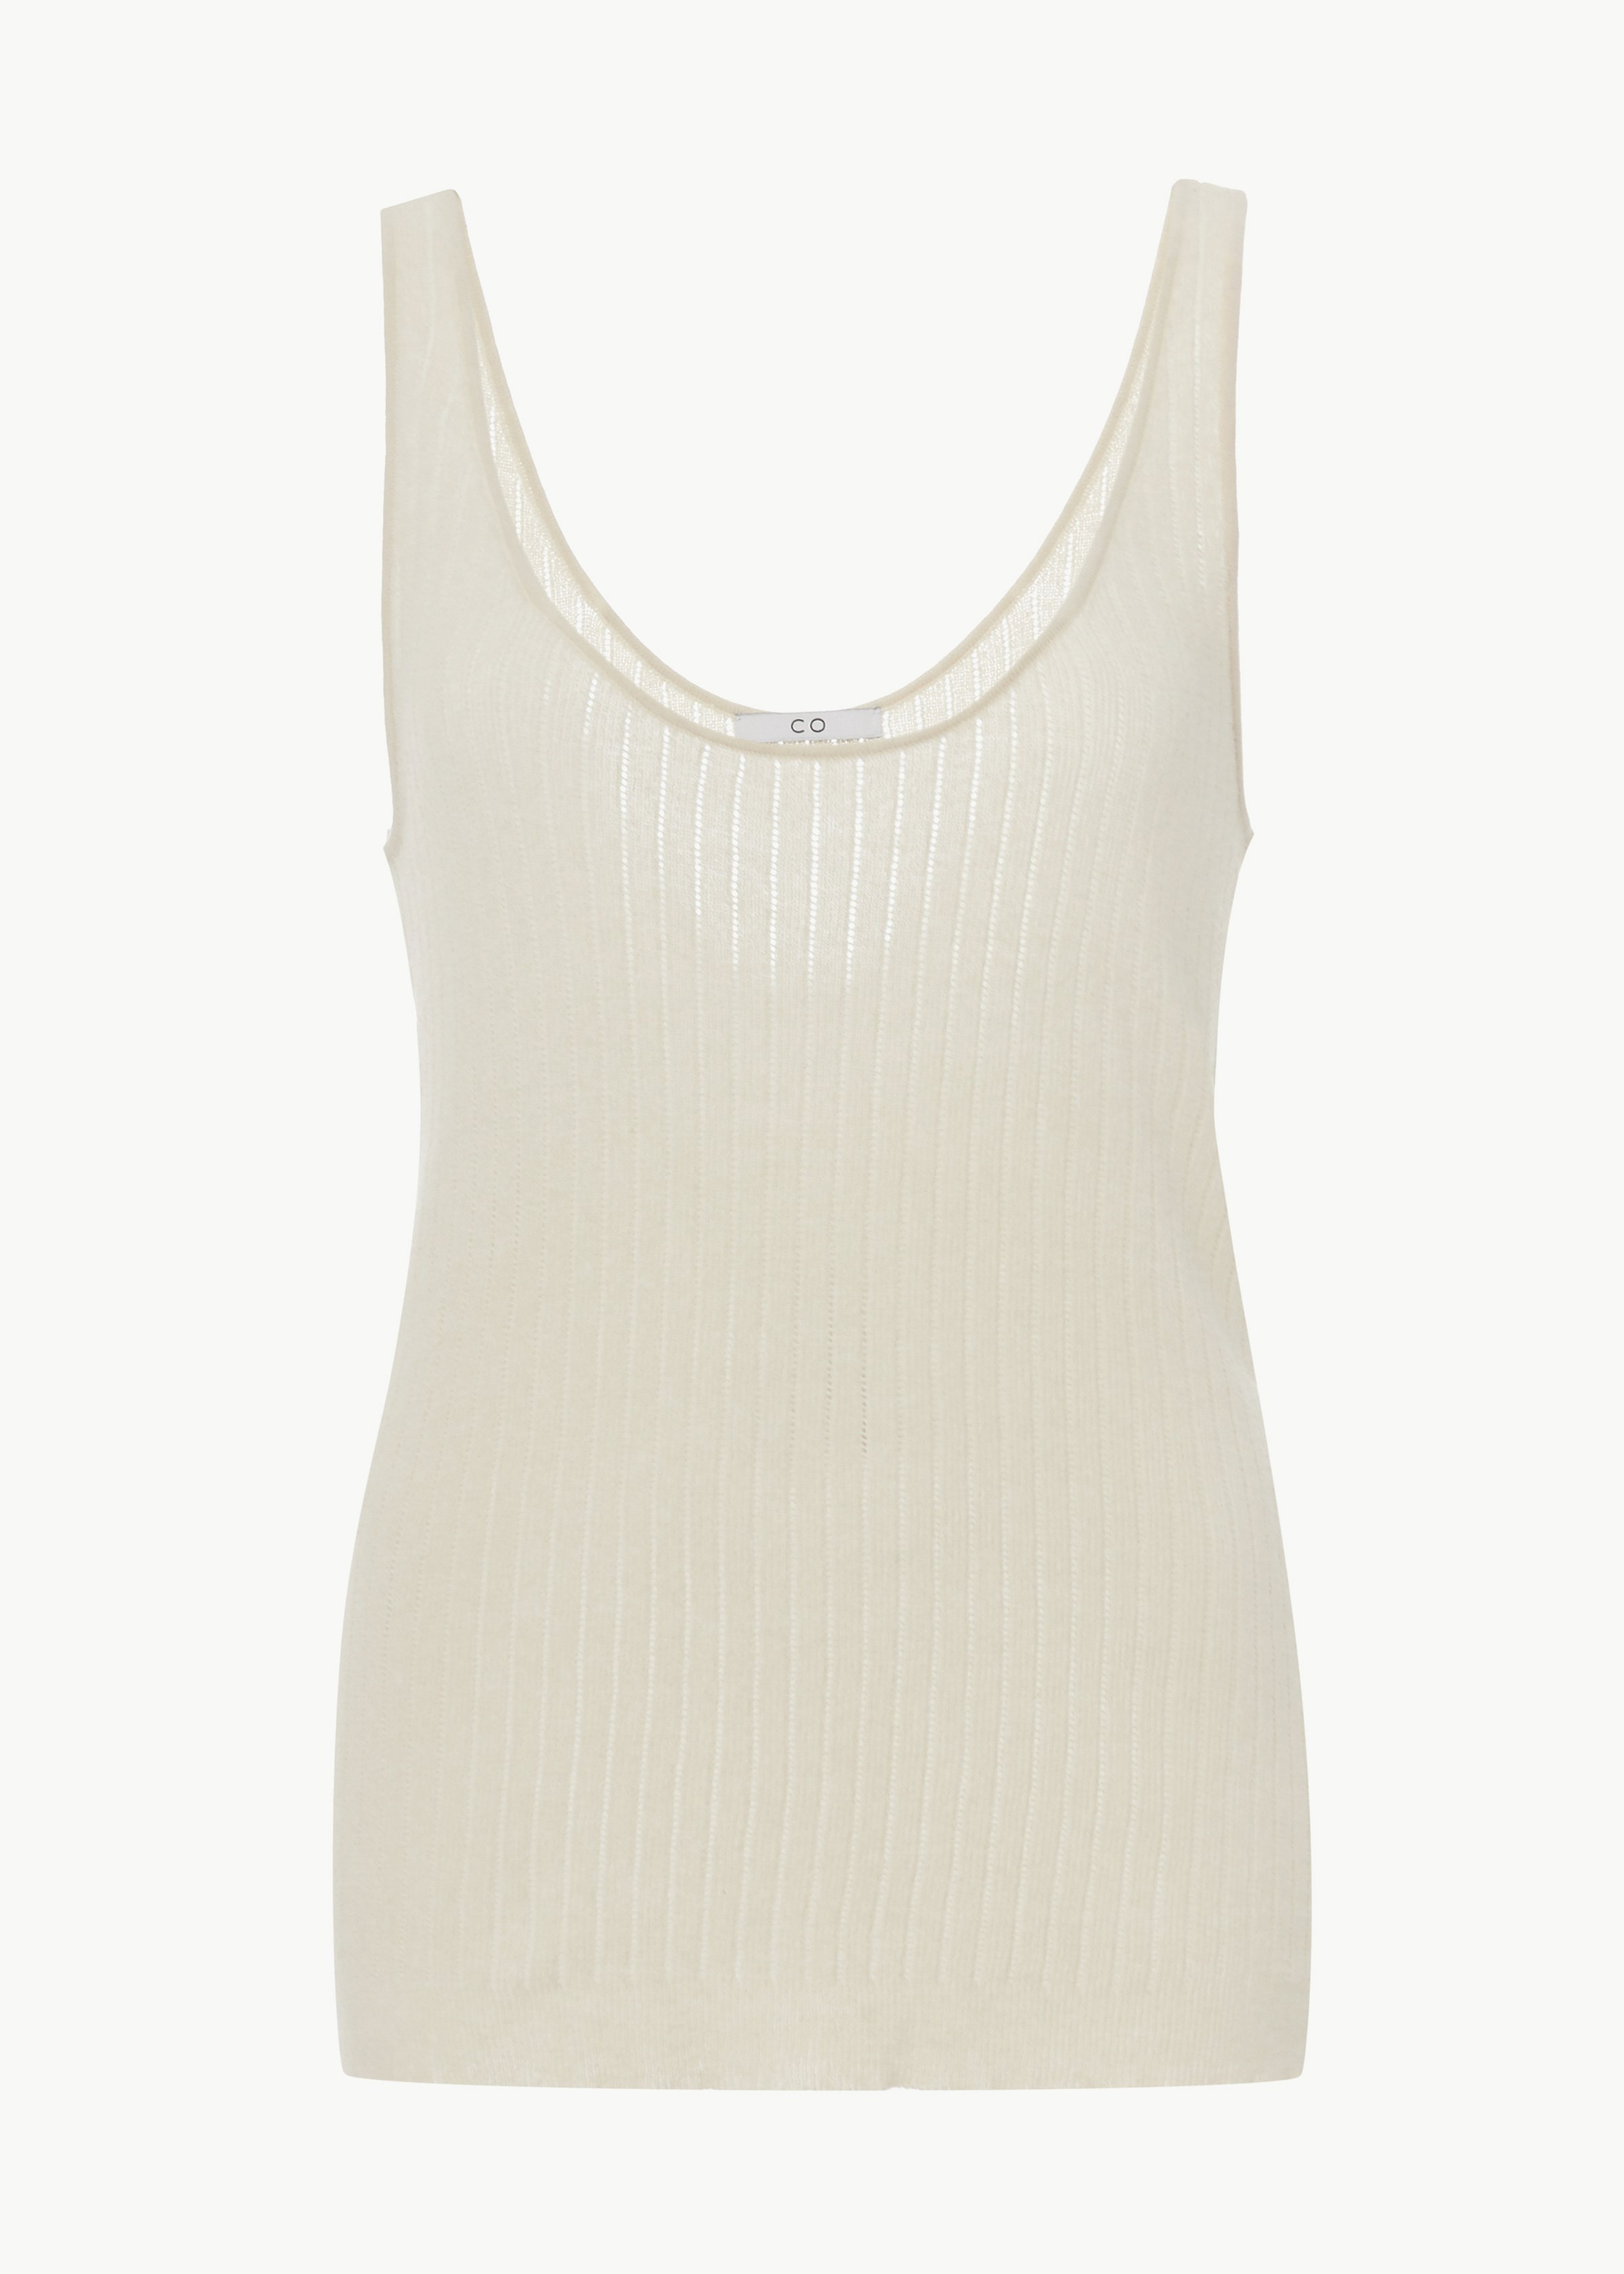 Pointelle Sweater Tank in Cotton - Black in Ivory by Co Collections